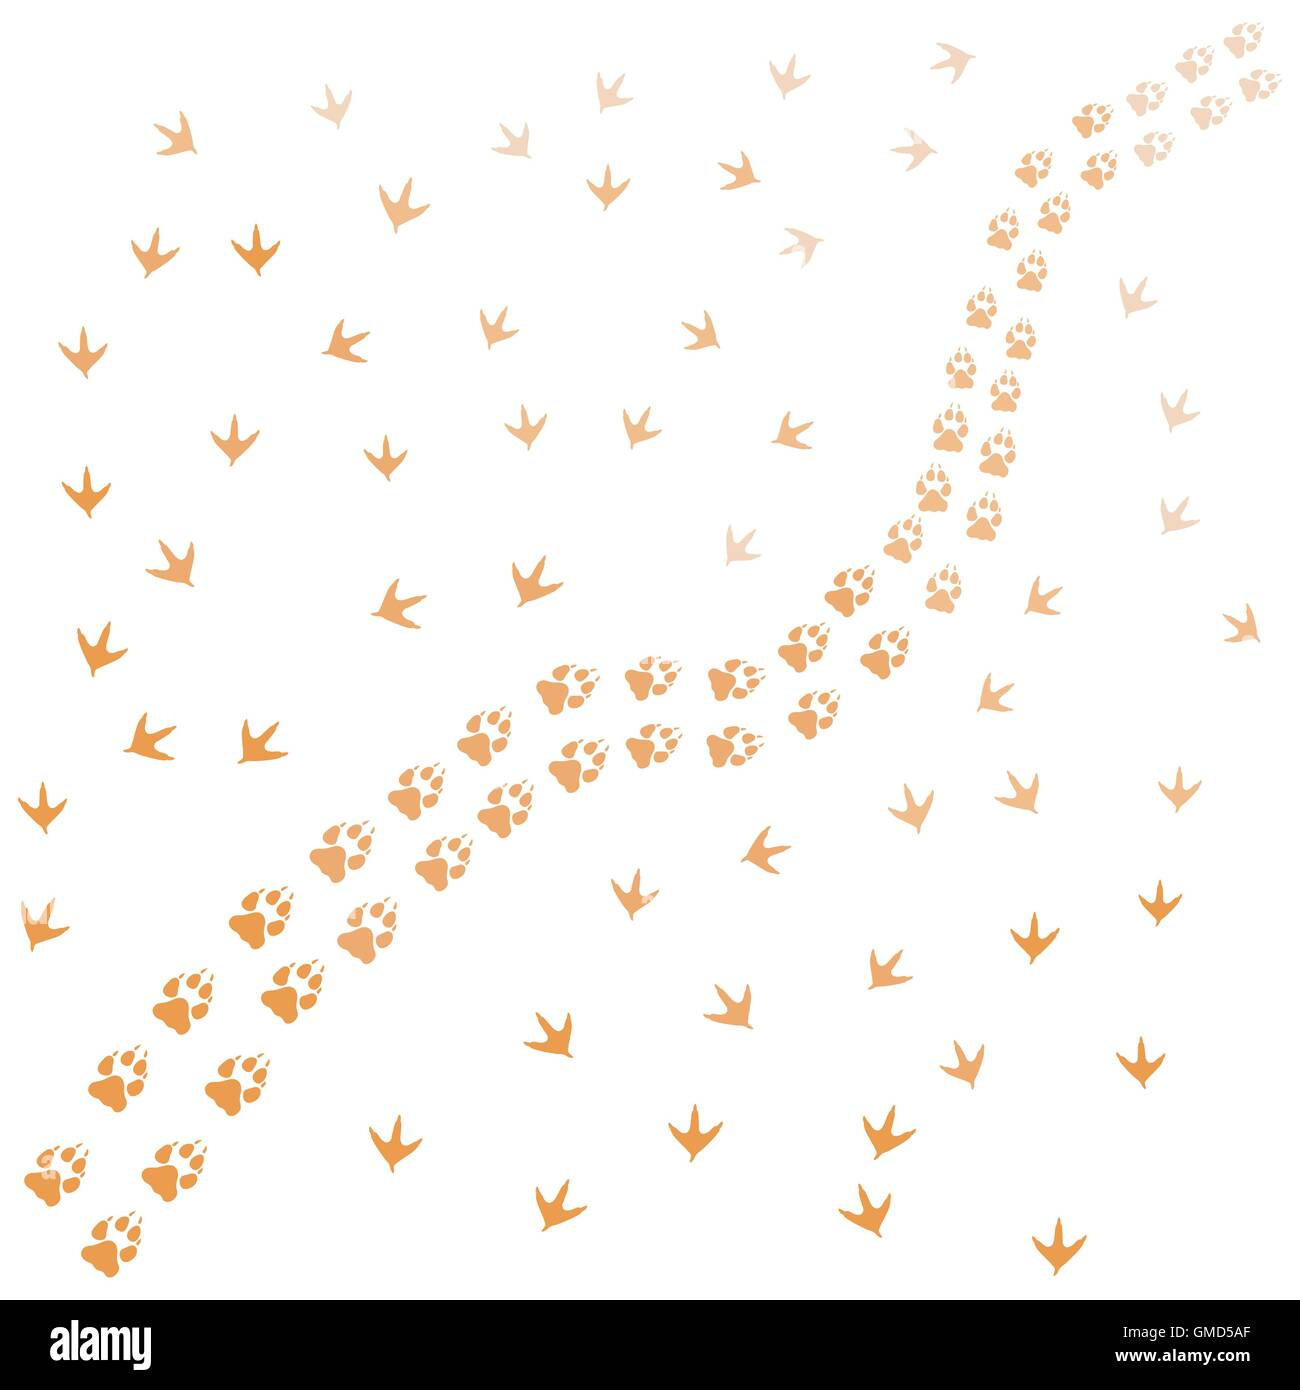 Nice picture of  traces of birds and animals on a white background - Stock Image